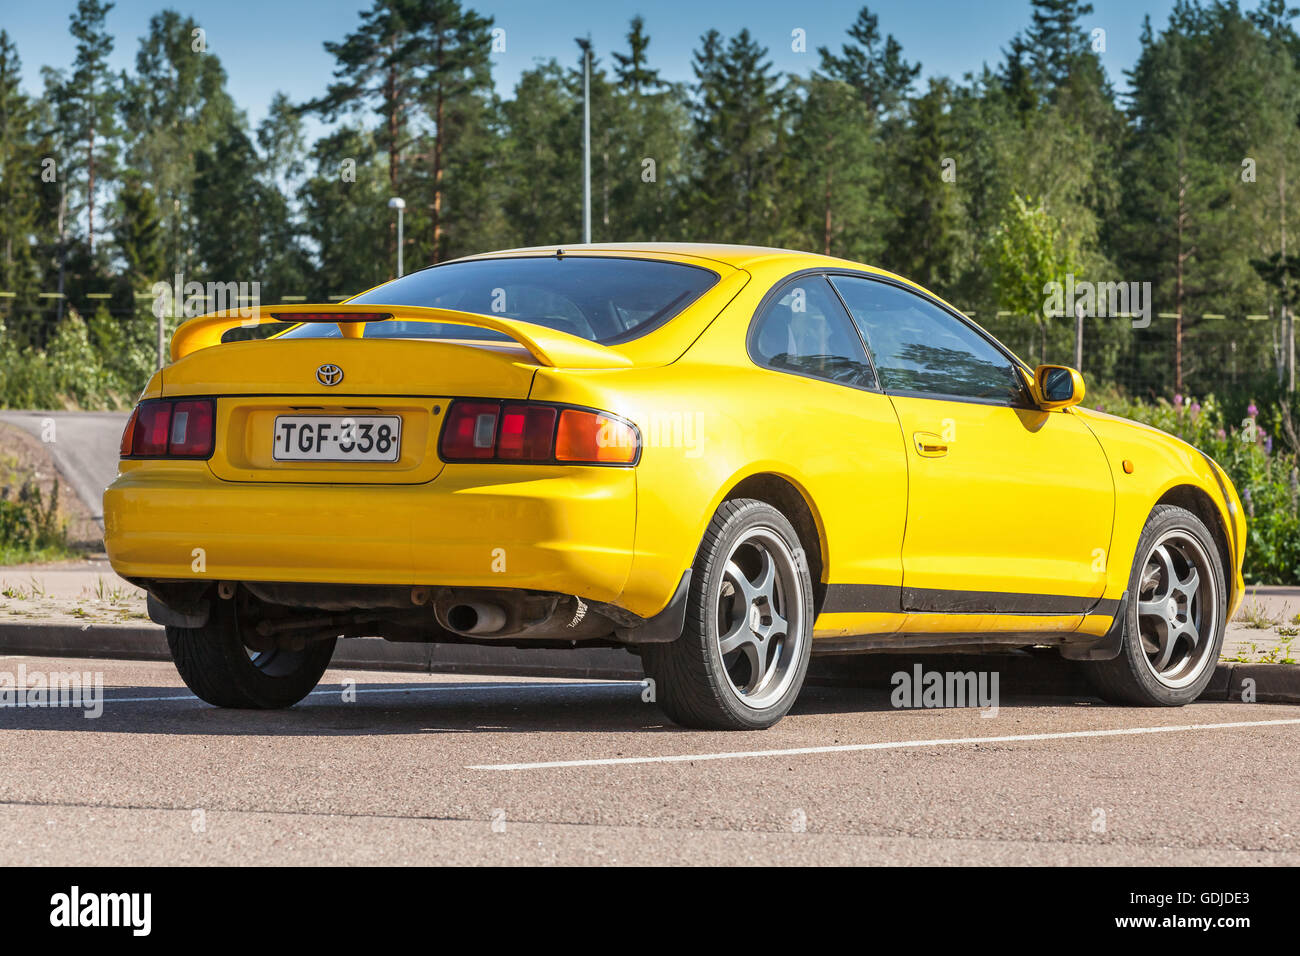 Kotka, Finland - July 16, 2016: Bright Yellow Facelift Toyota Celica GT liftback T200 model of 1994-1999, rear view Stock Photo